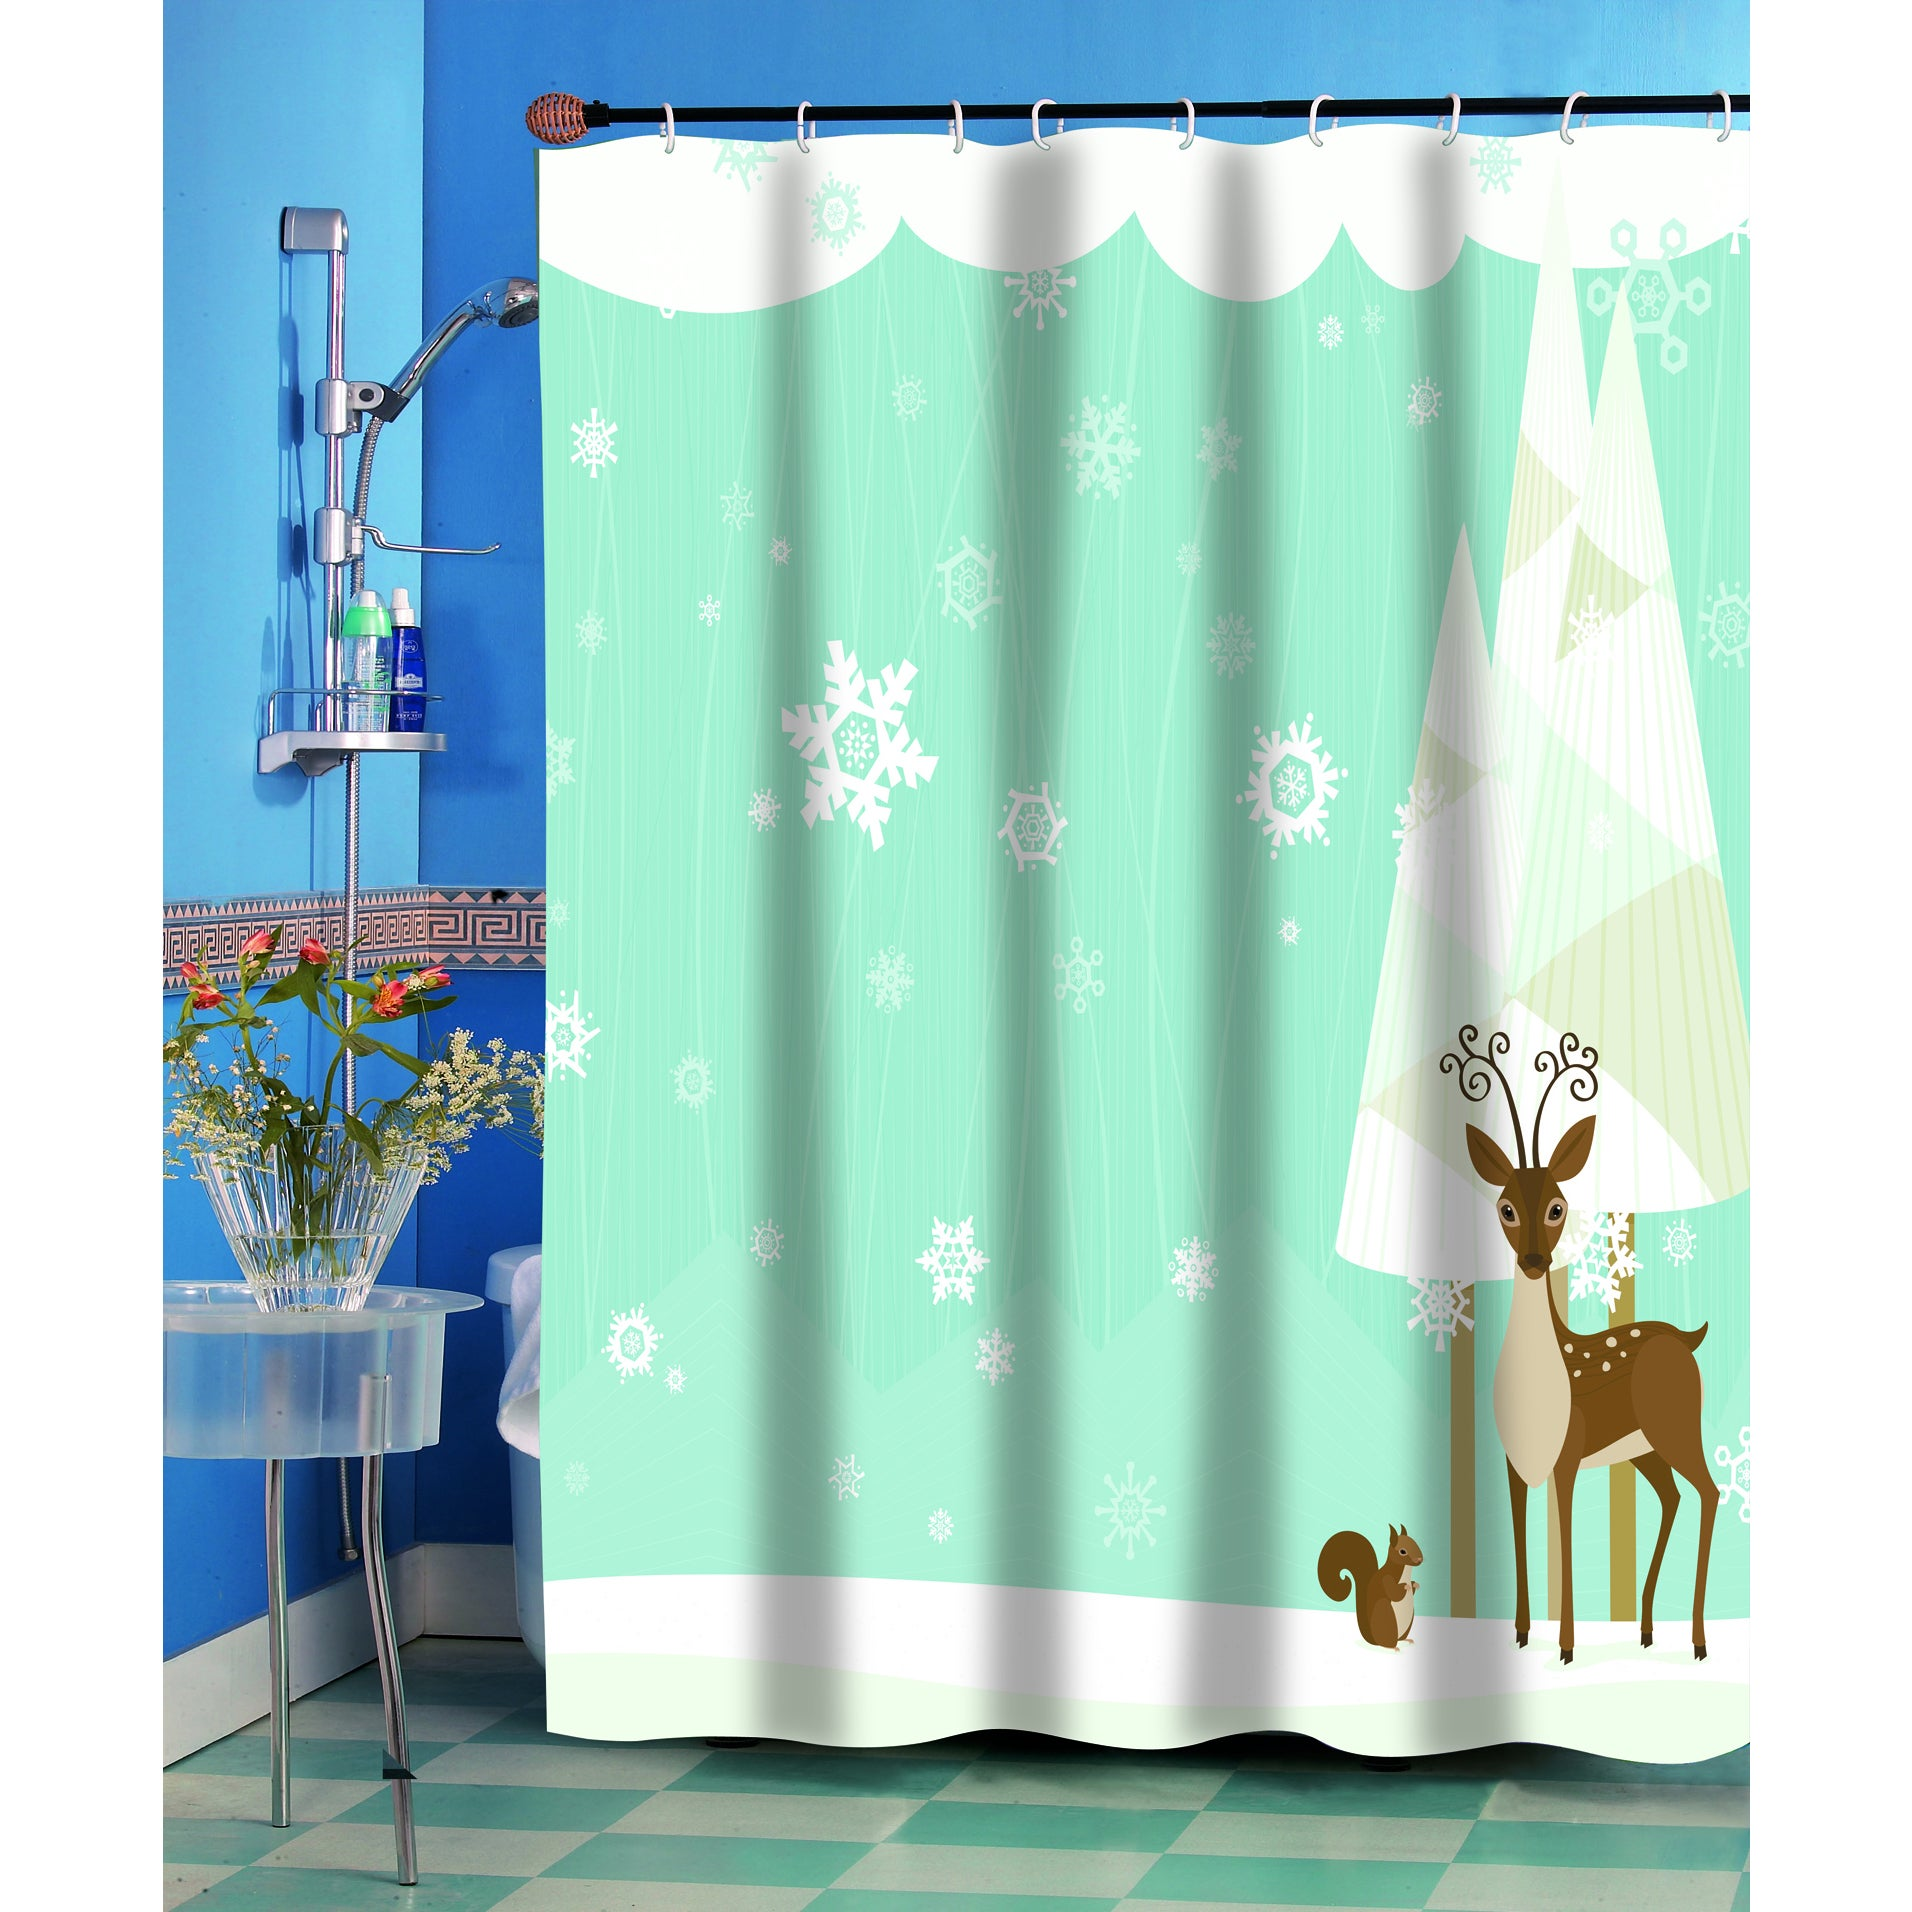 Shop Forest Friends Christmas Holiday Themed Fabric Shower Curtain